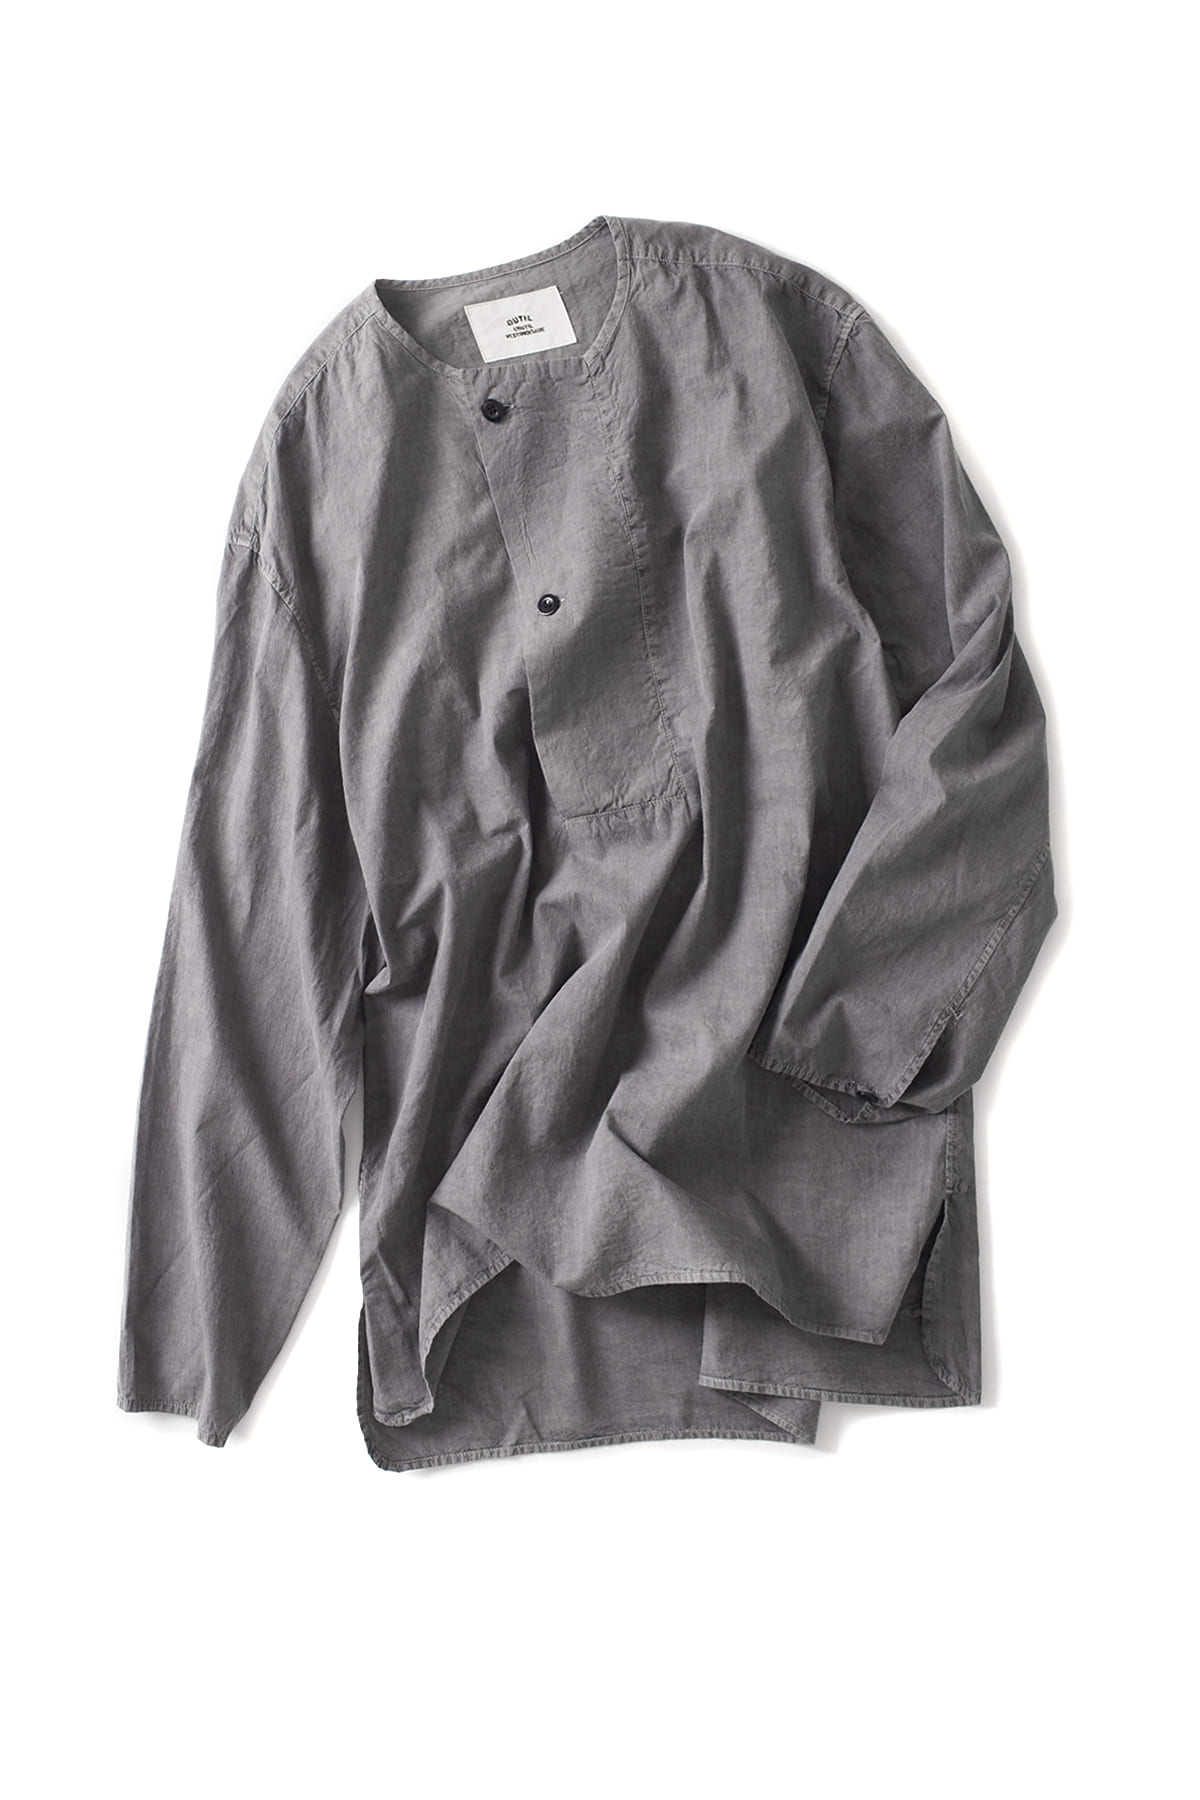 OUTIL : Chemisier Omet (Grey)